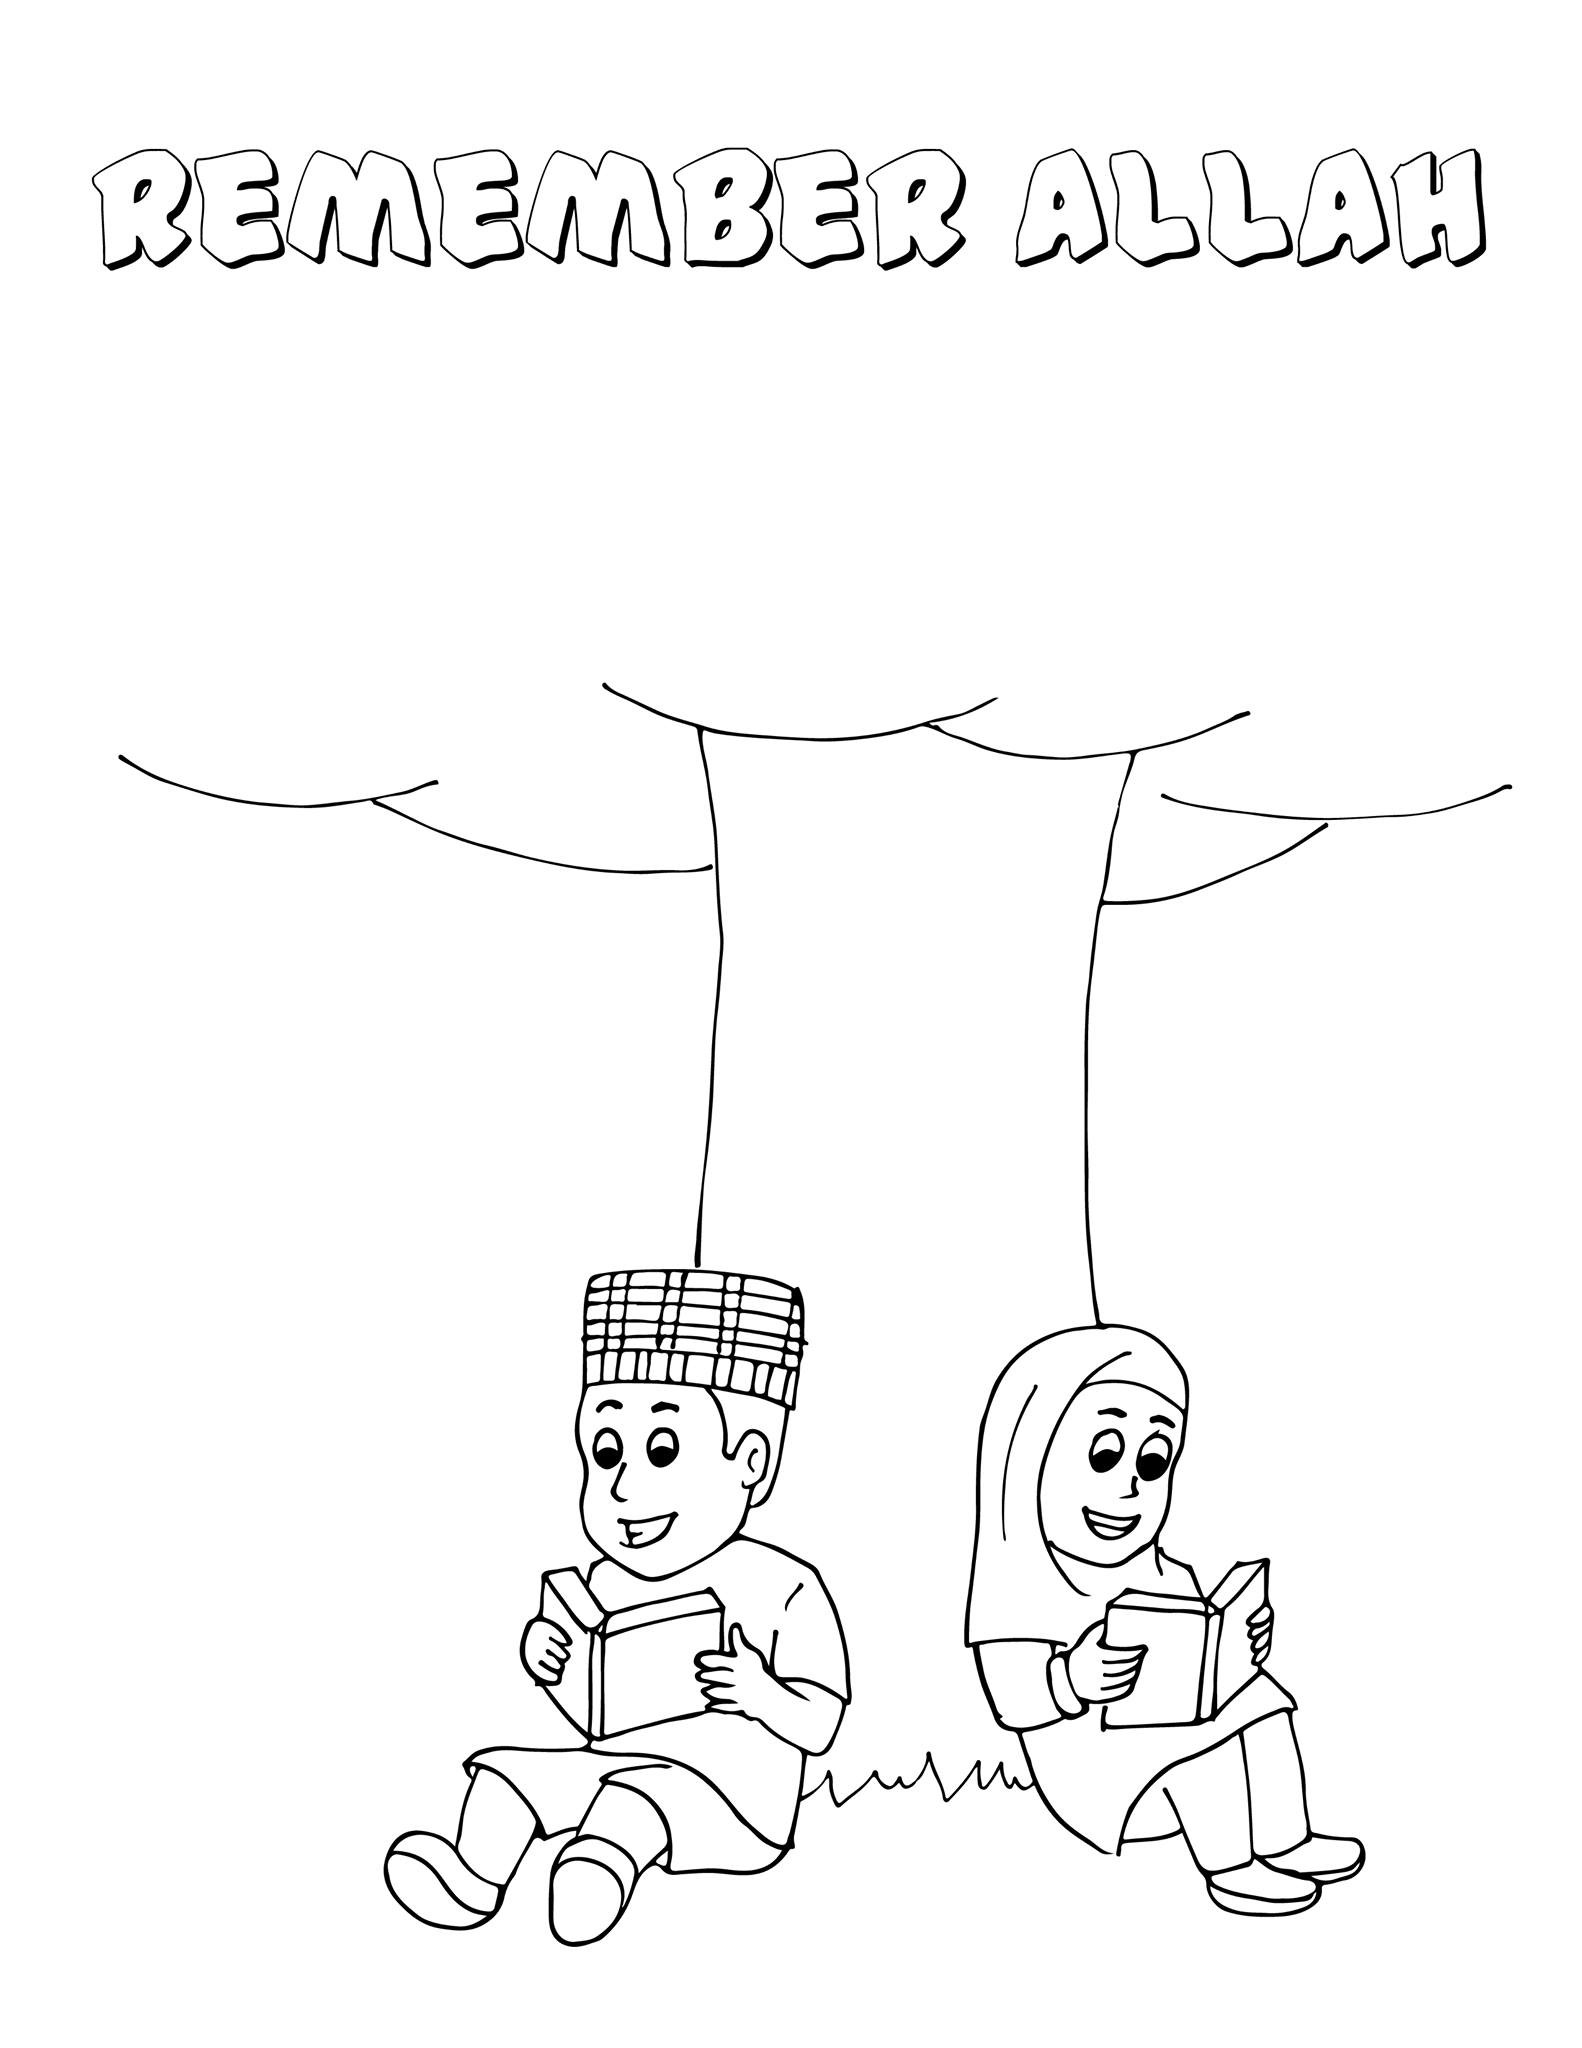 Fun Islamic Coloring Sheets For Kids  Noon Publications Islamic Coloring Book